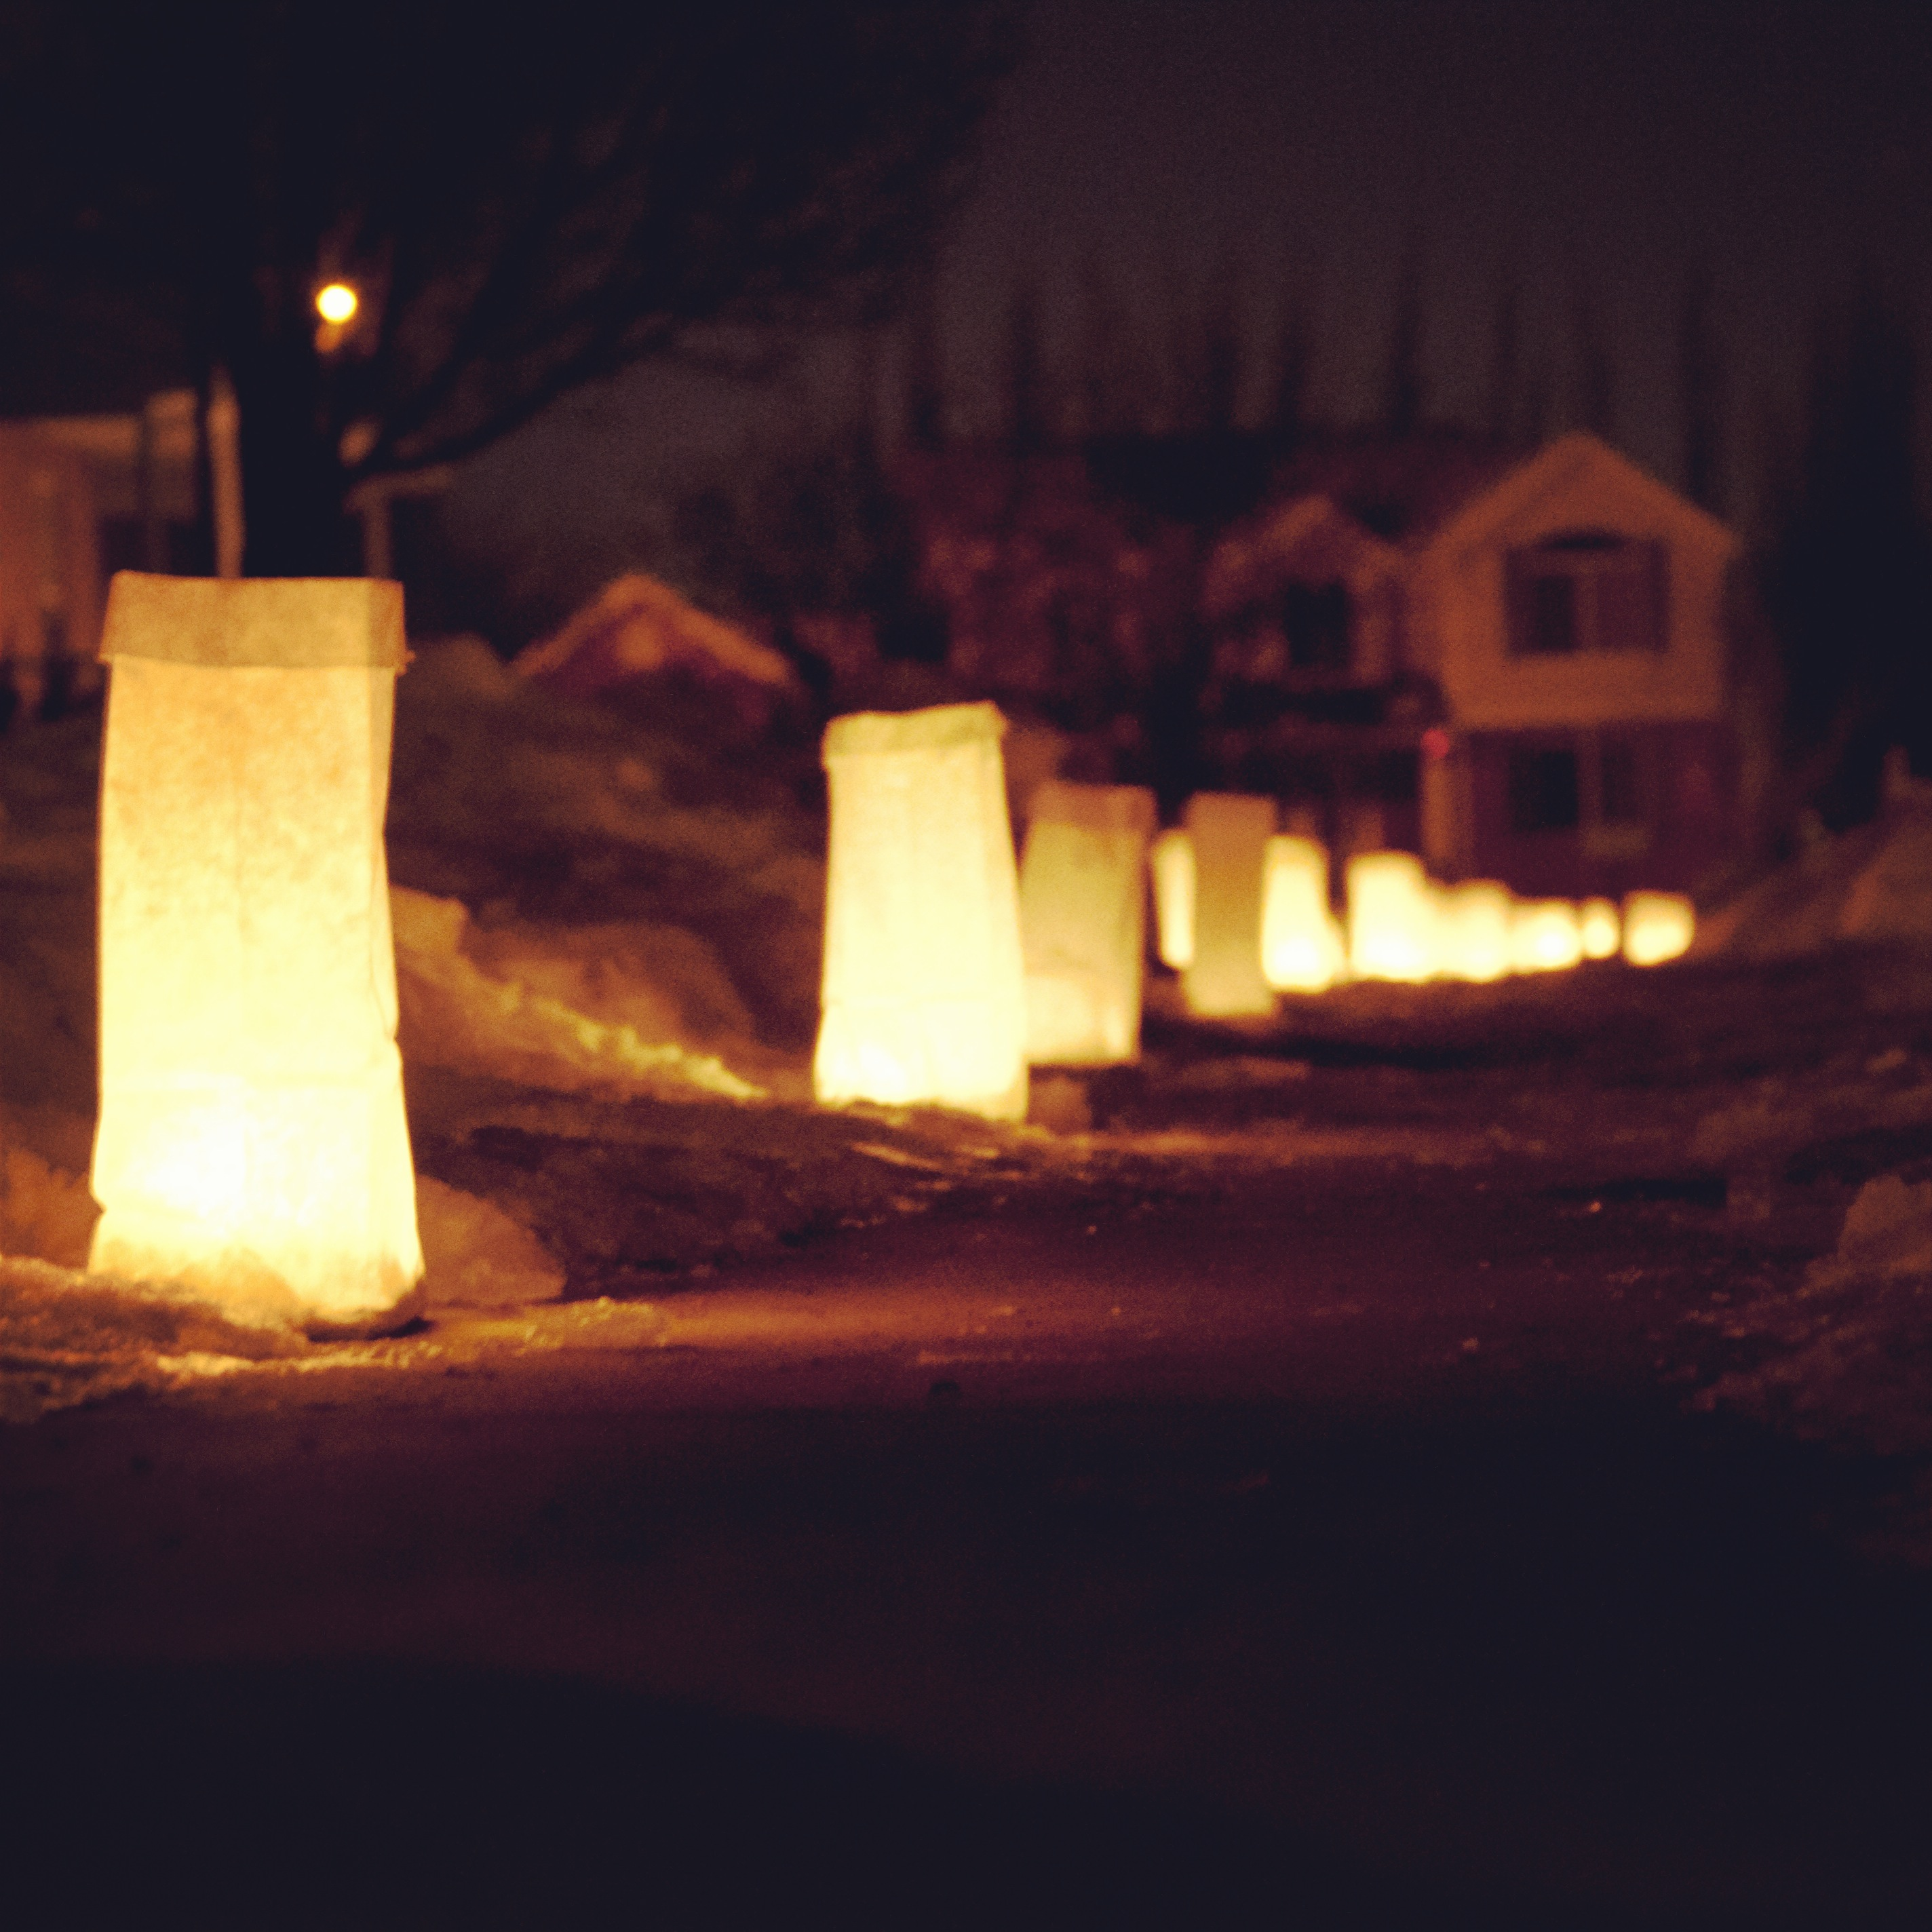 Bags 8 Size From Carpenter Paper And The Candles Are 10 Hour Votive Quickcandle Sand Is Staker Parson On Beck Street